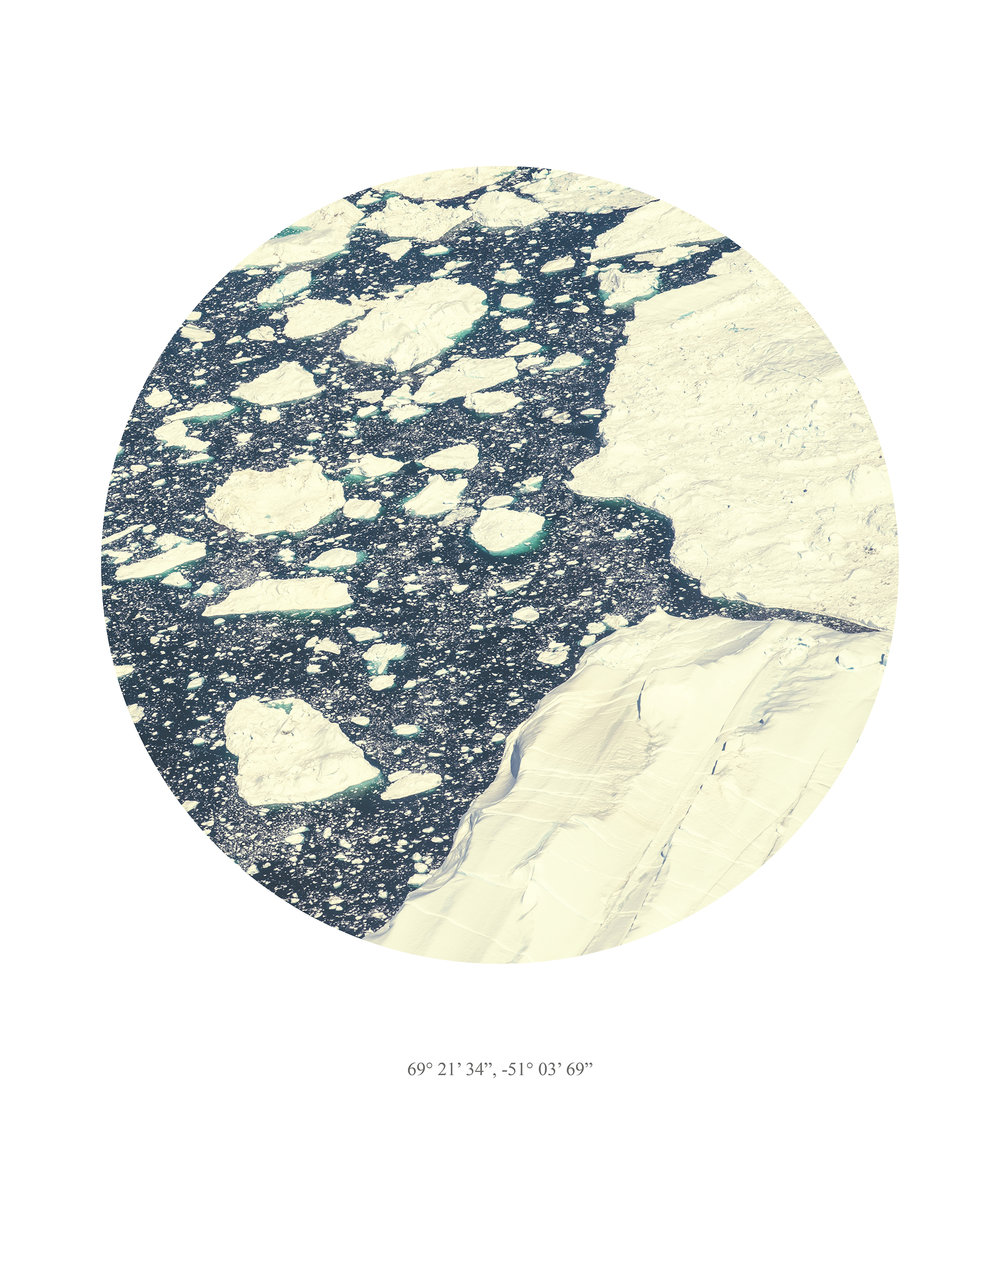 Melt  Melt is a series of 12 circular aerial images of the Greenland ice sheet, taken in August 2013.  GPS references are displayed on each photograph.